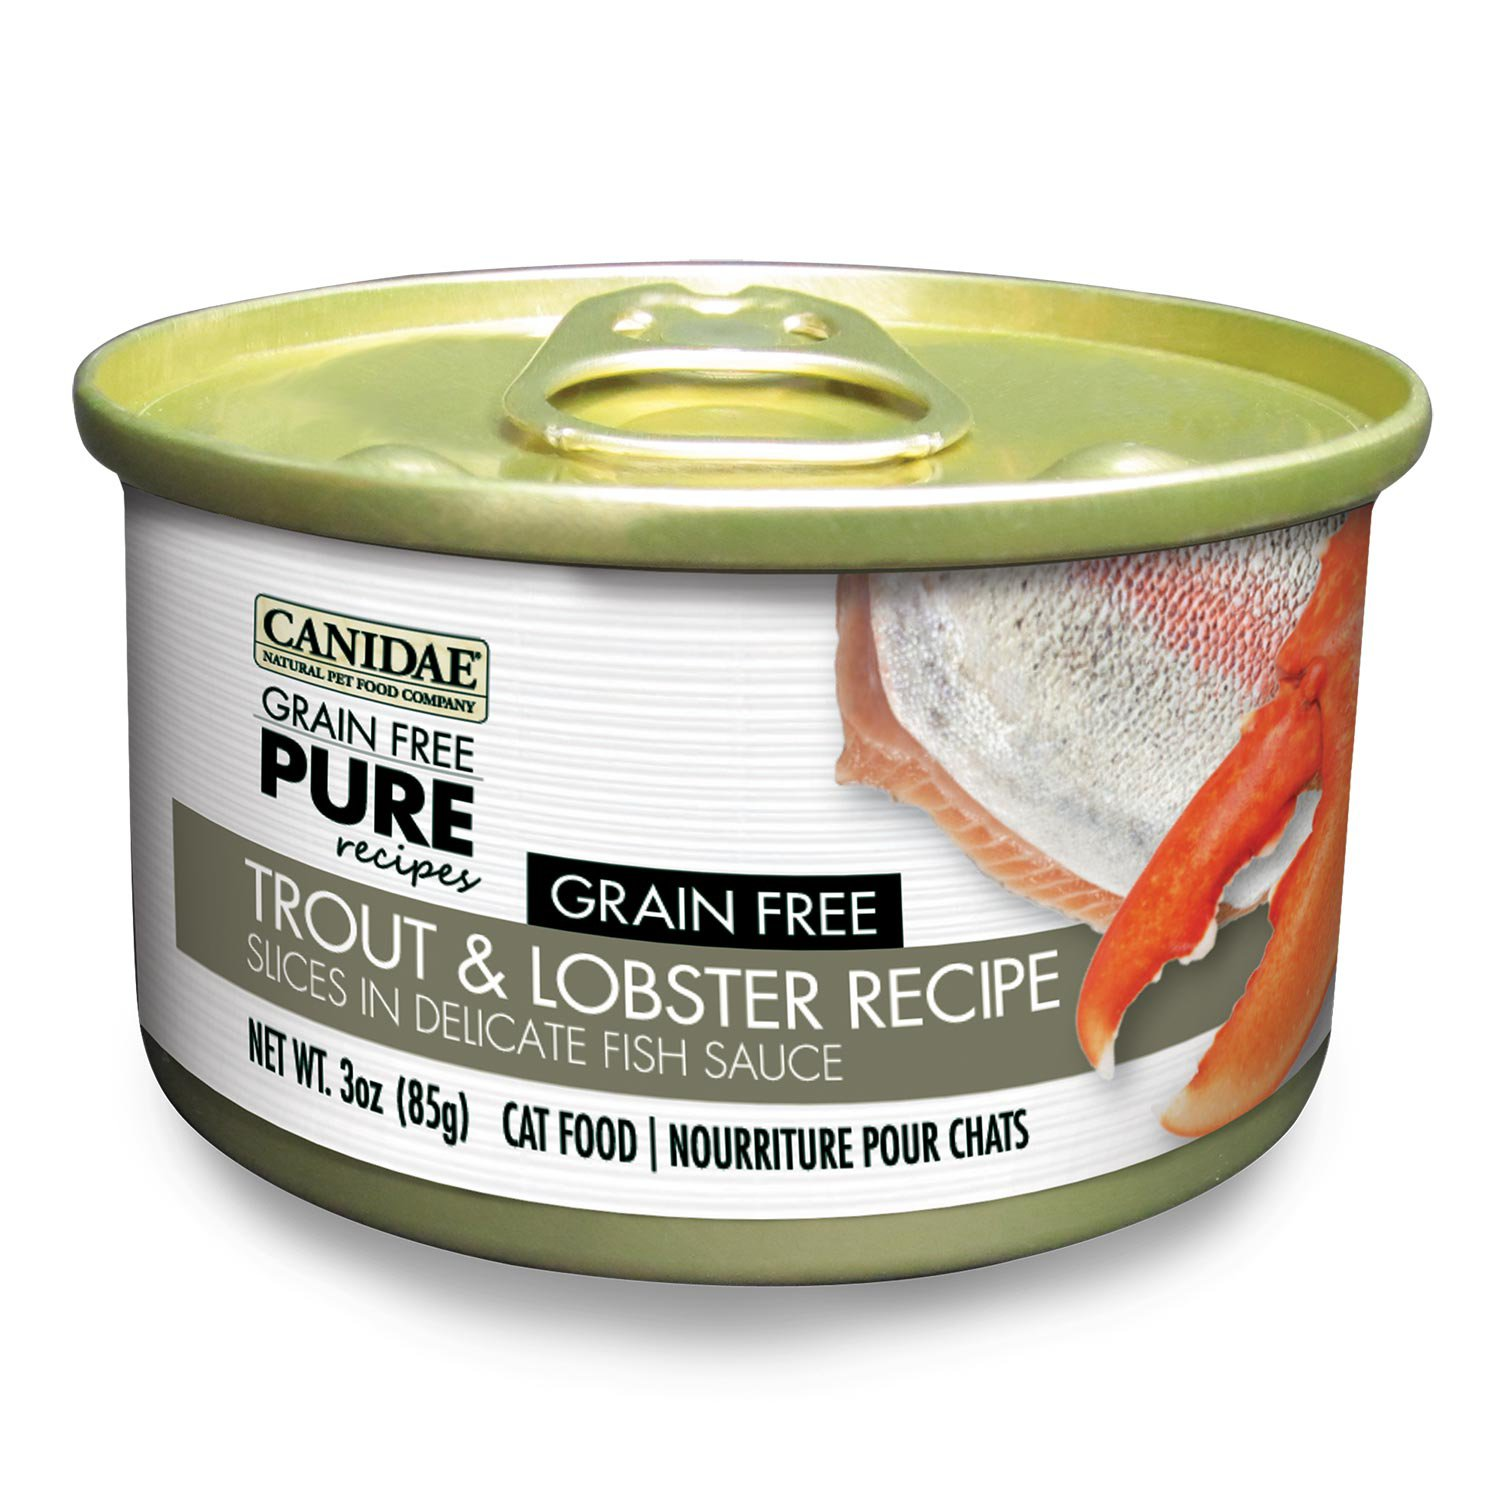 Canidae Grain Free Pure Recipes Trout & Lobster Canned Cat Food